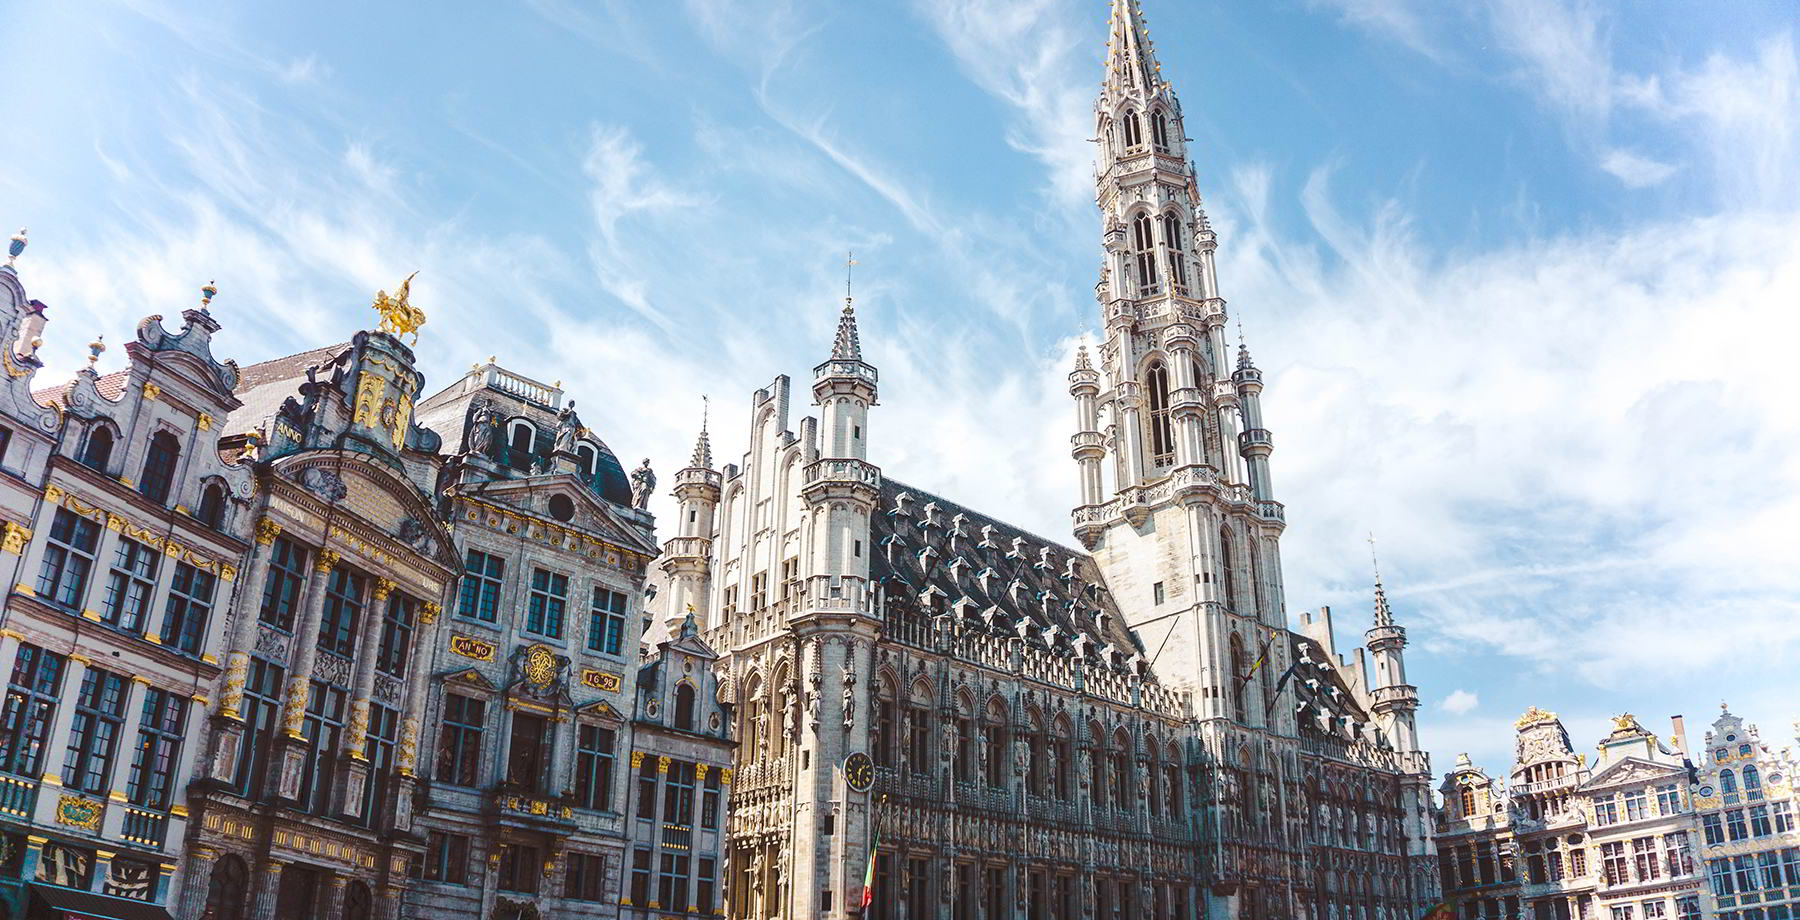 Brussels - Grand' Place (Grote Markt)